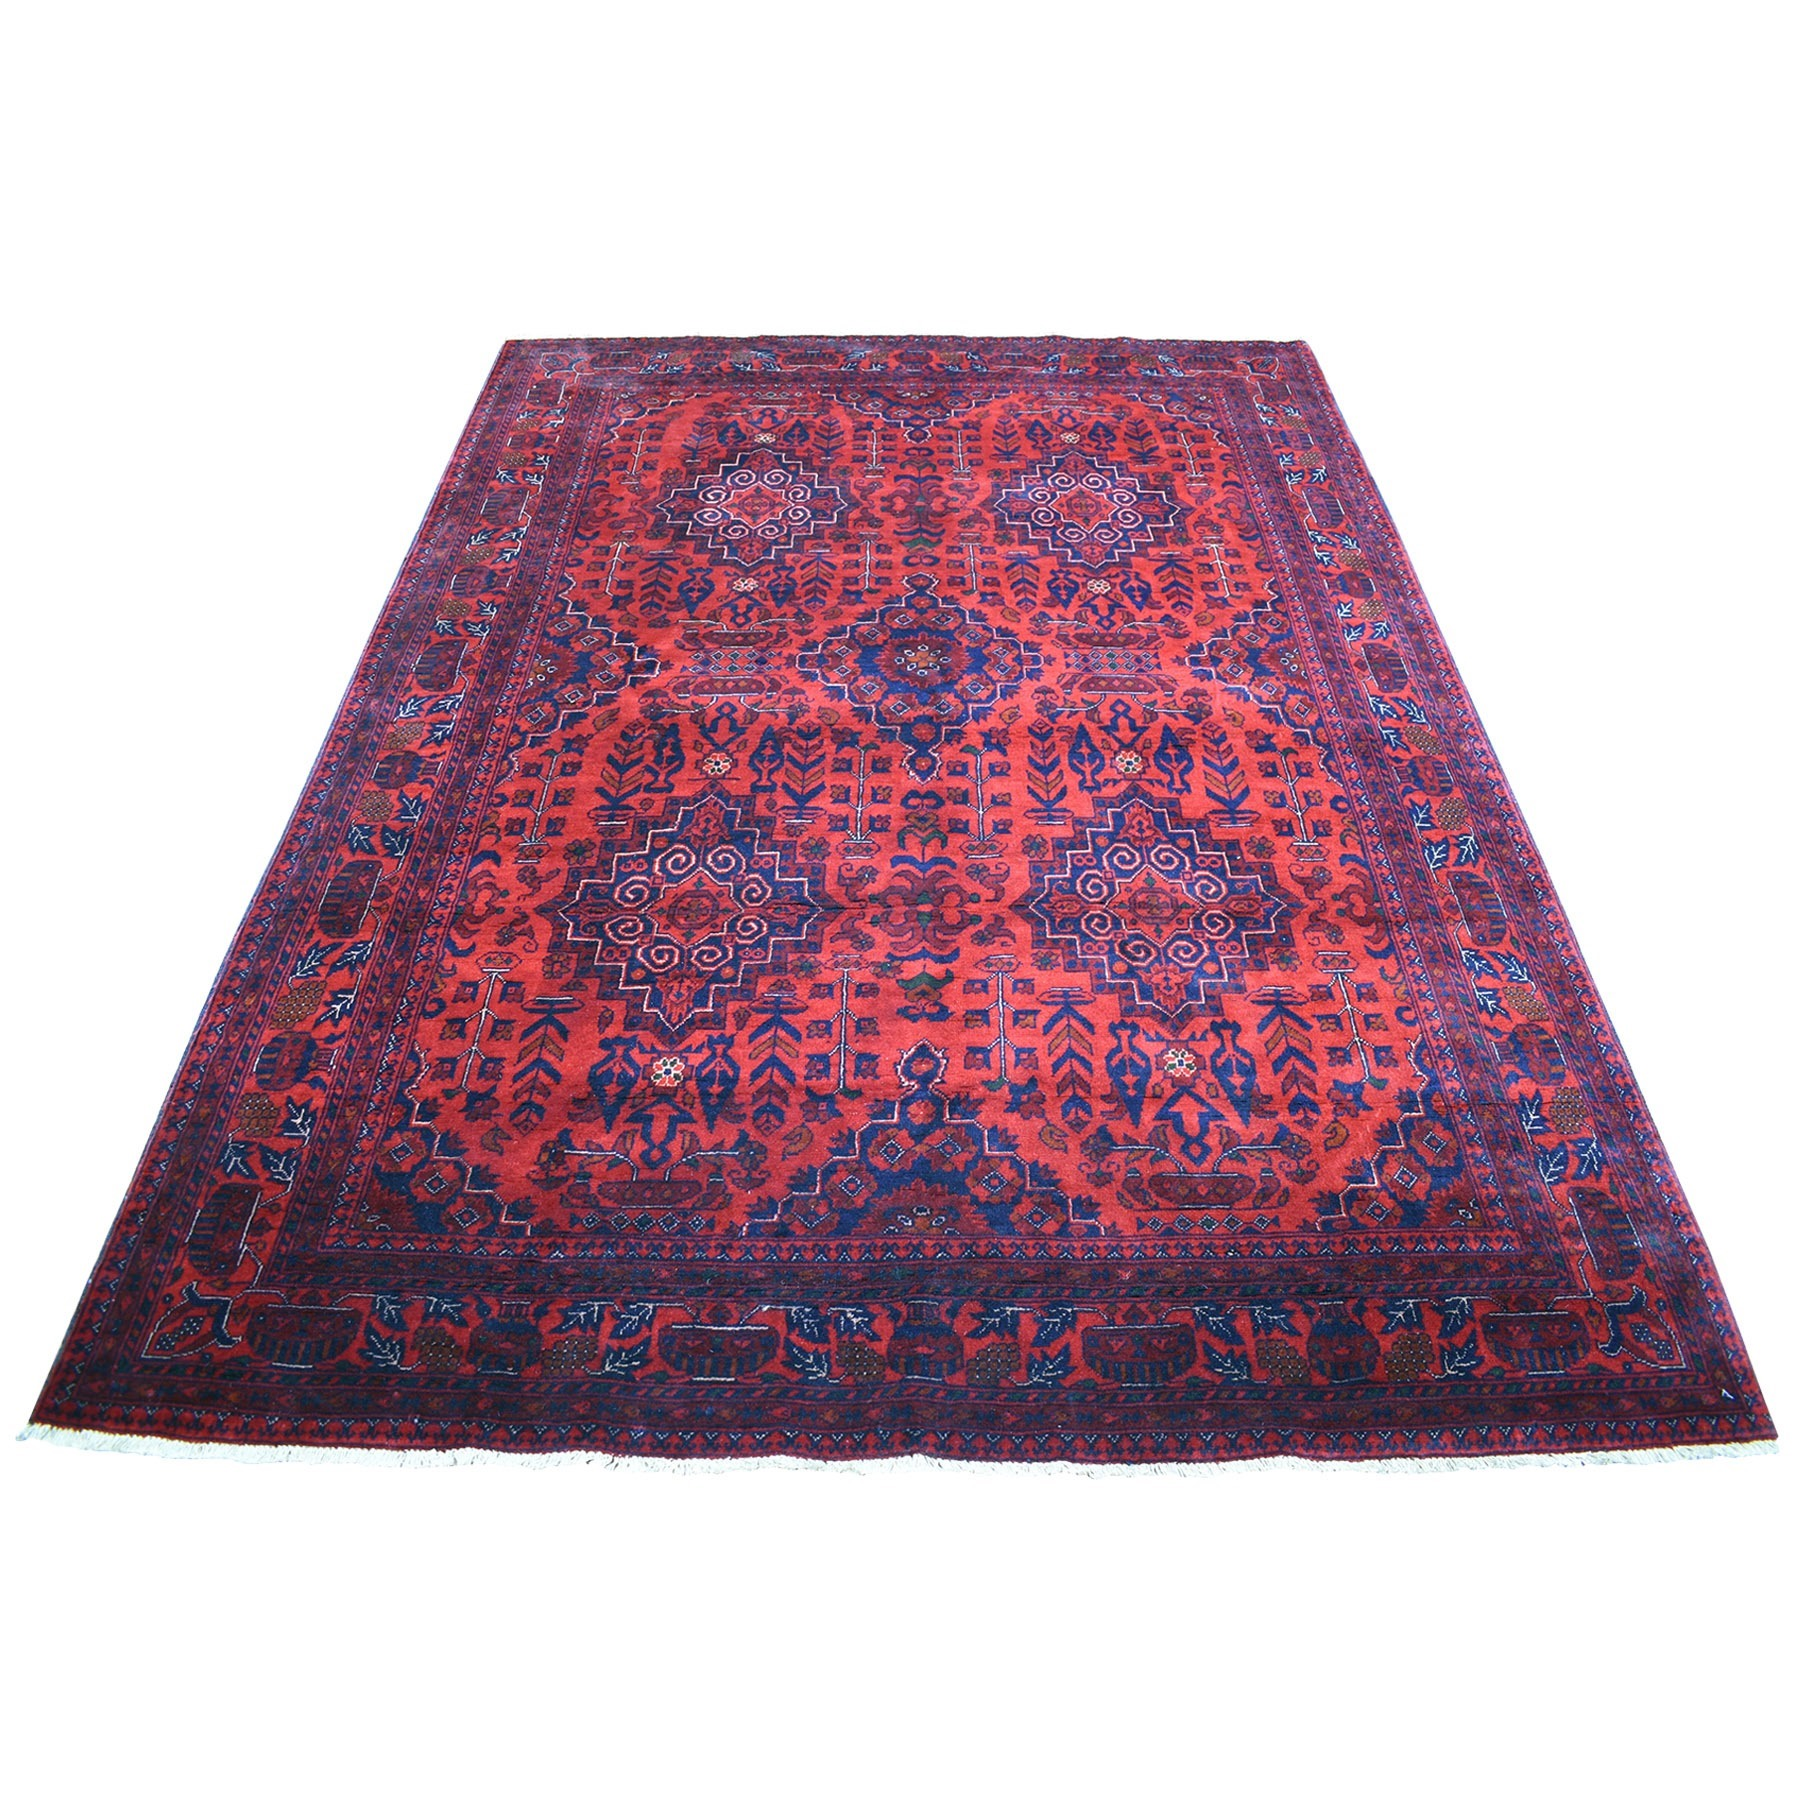 Nomadic And Village Collection Hand Knotted Red Rug No: 1135930